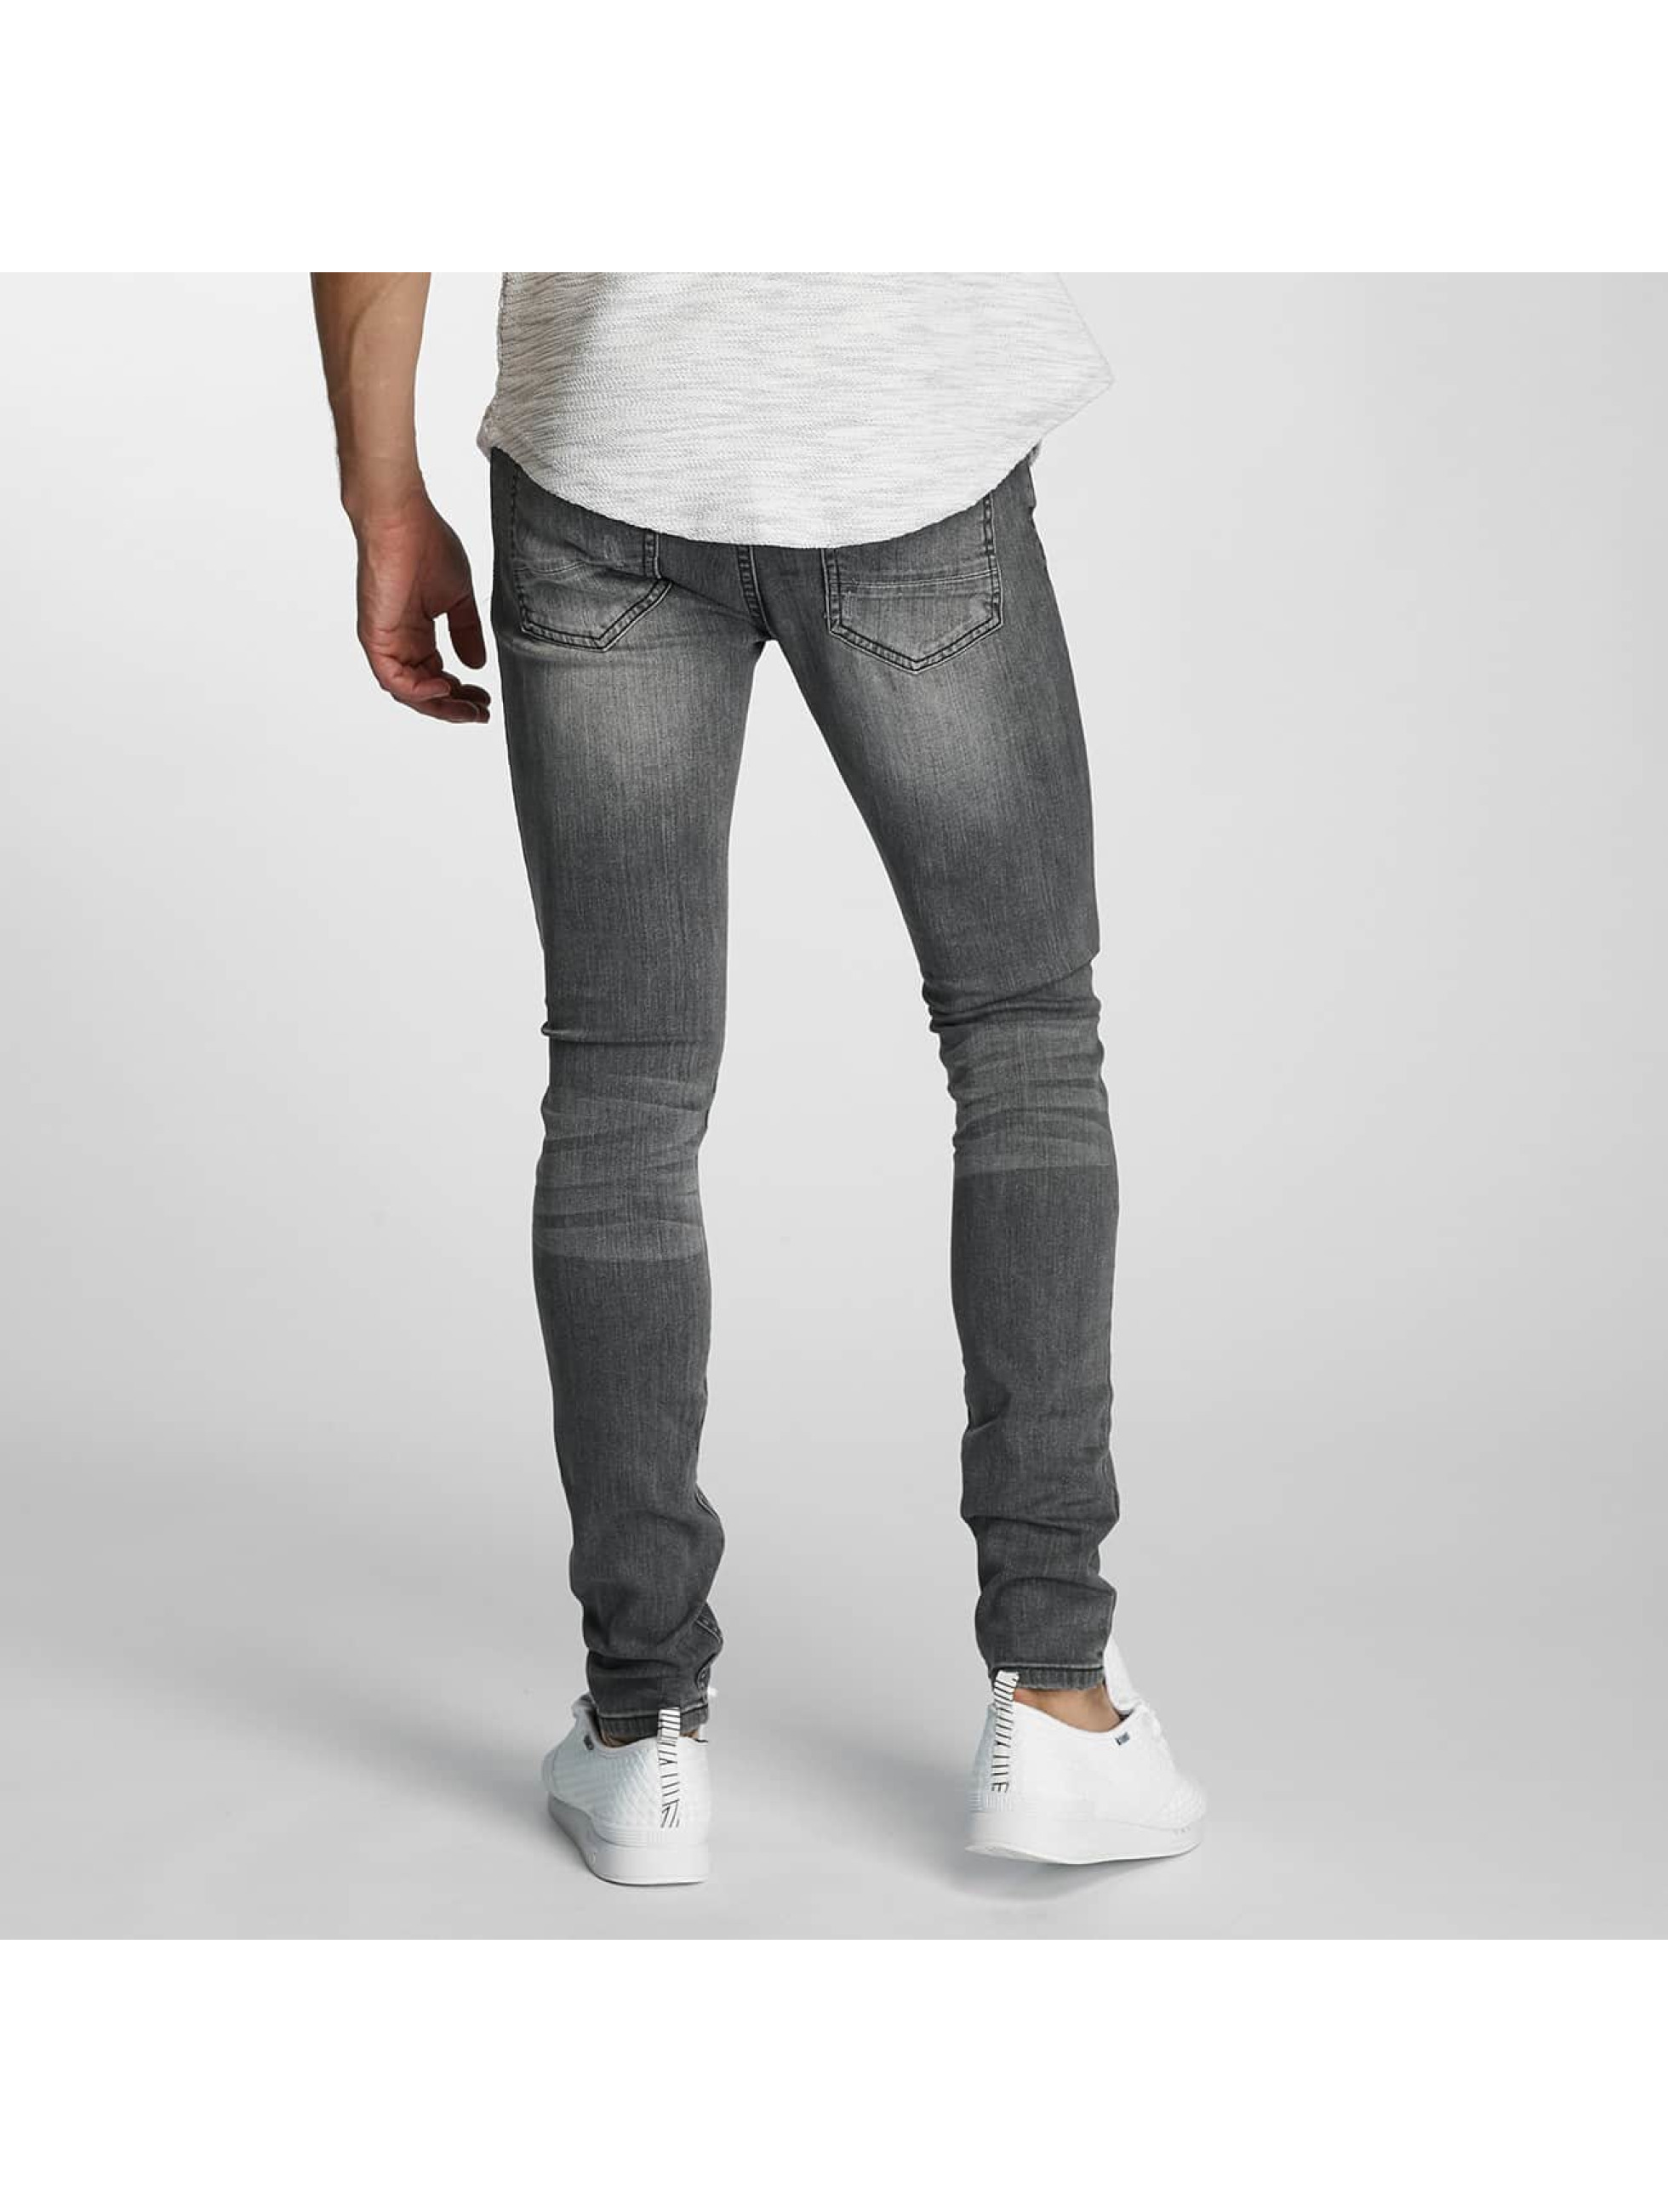 Paris Premium Slim Fit Jeans Almond grey